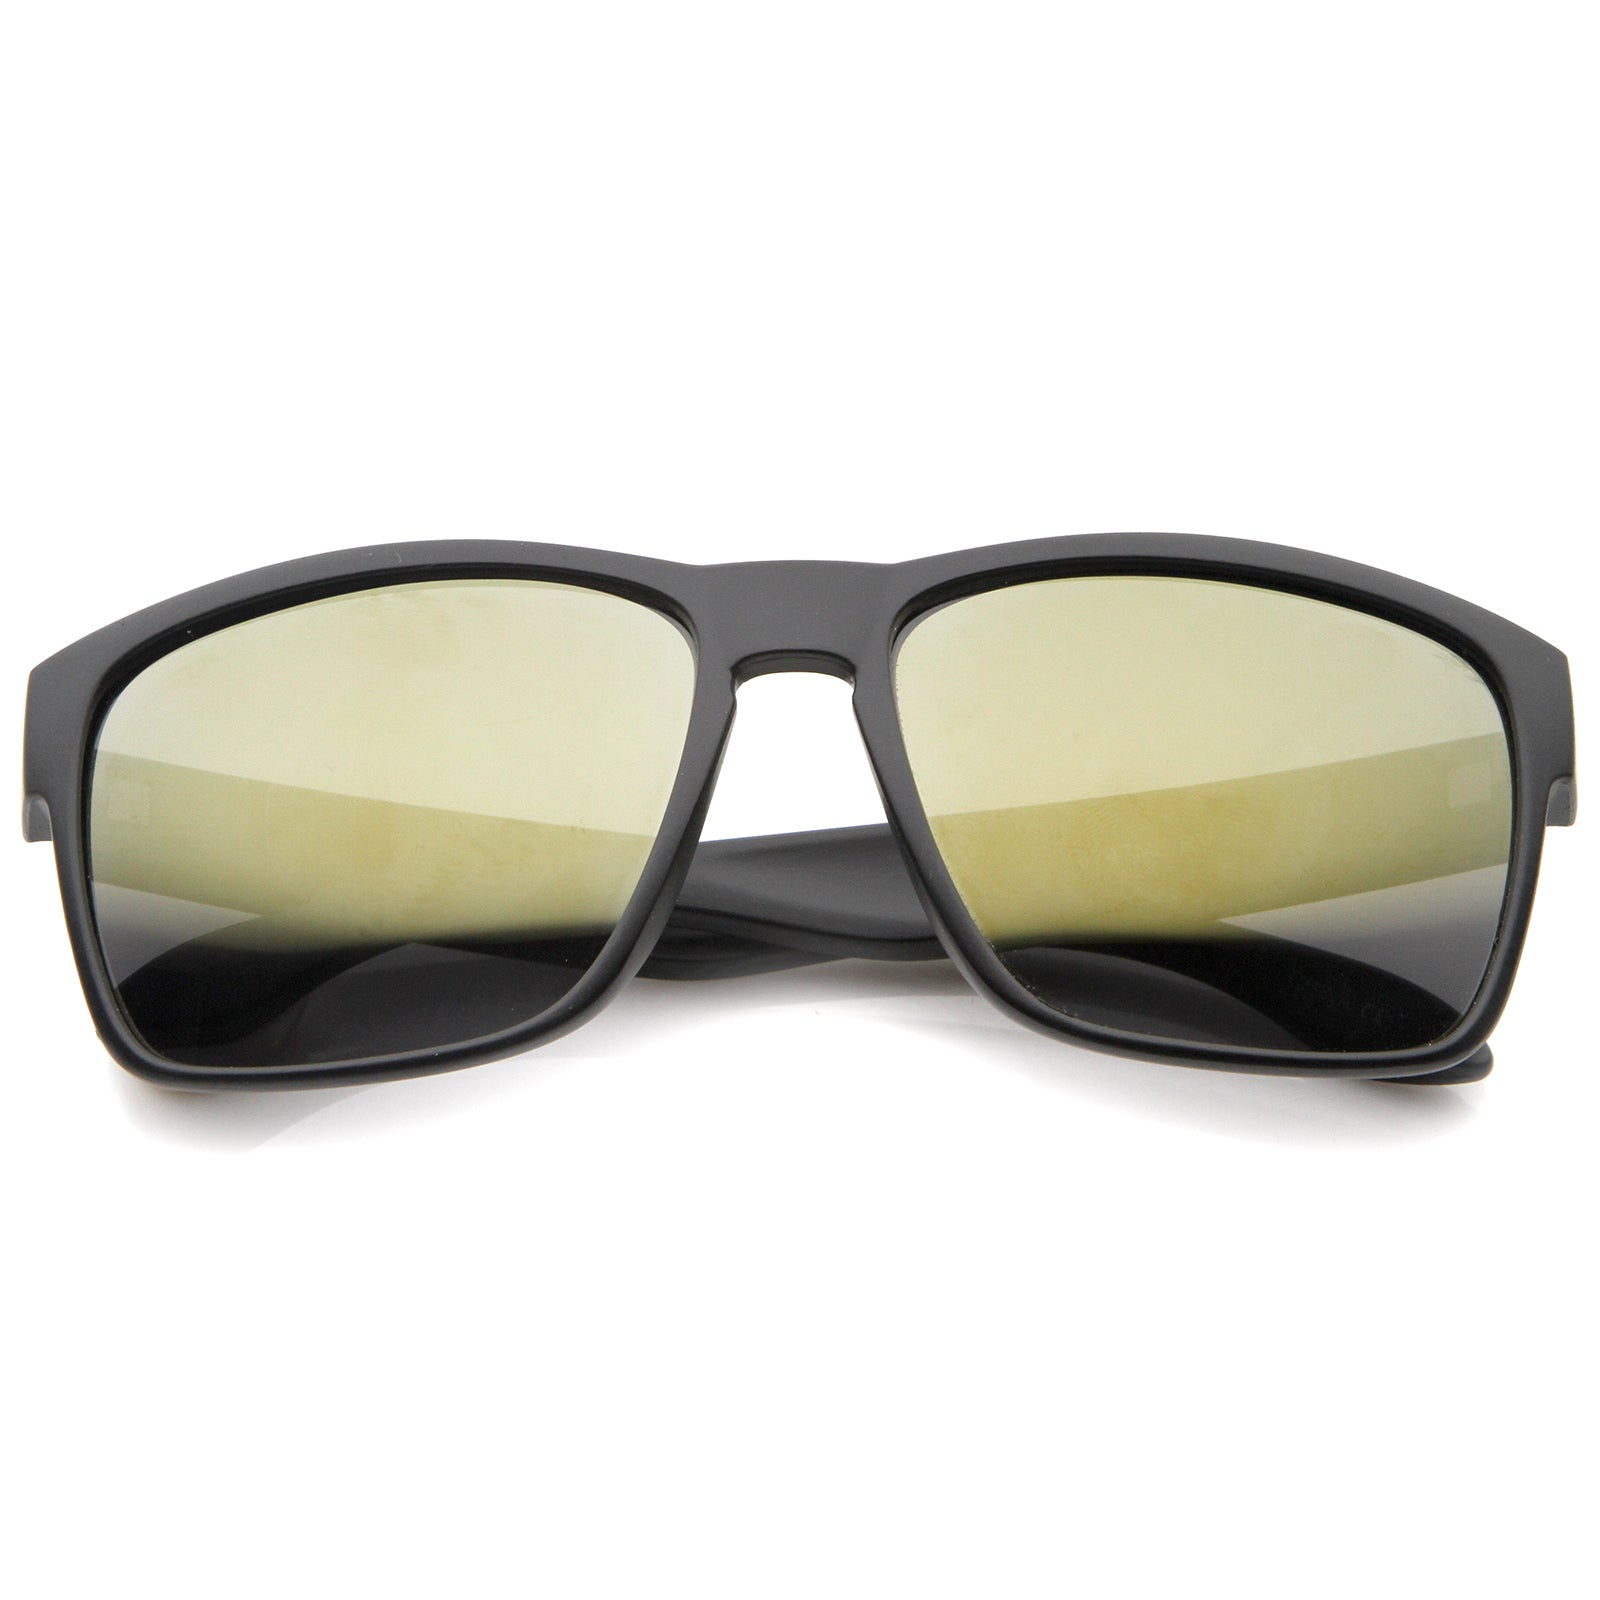 1b4479d136c2 Action Sport Modern Frame Mirrored Lens Rectangle Sunglasses 59mm ...